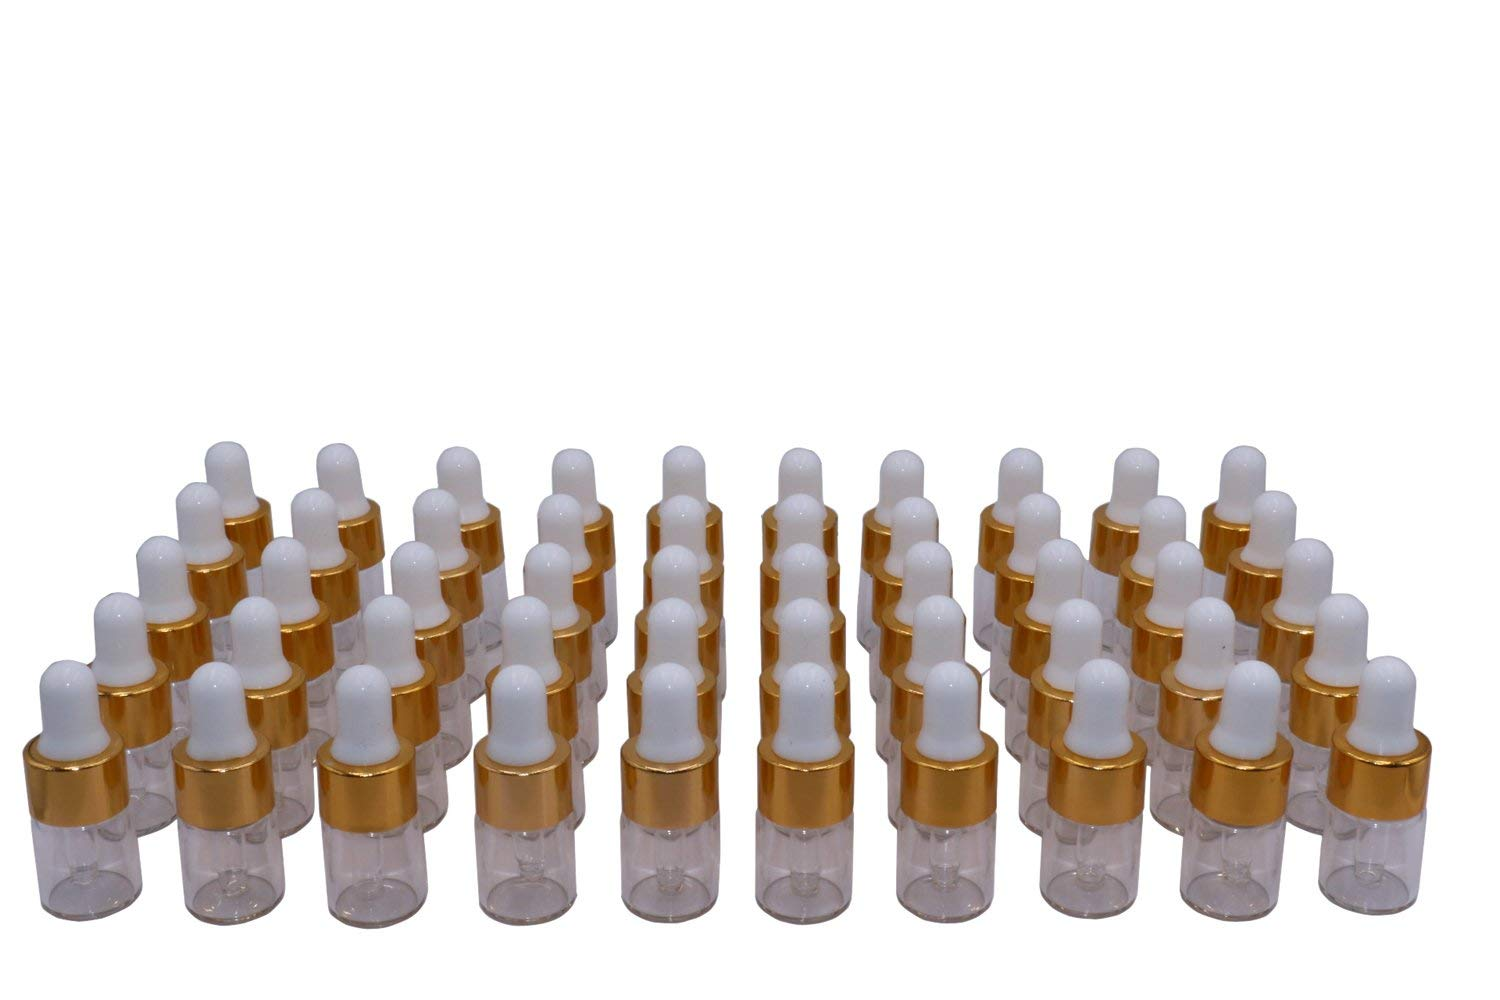 Wresty 50 Pcs Clear Glass Dropper Vails 2ml Mini Essential Oils Sample Dropper Bottles For Traveling Essential Oils Perfume Cosmetic Liquid,With 2 pcs dropper